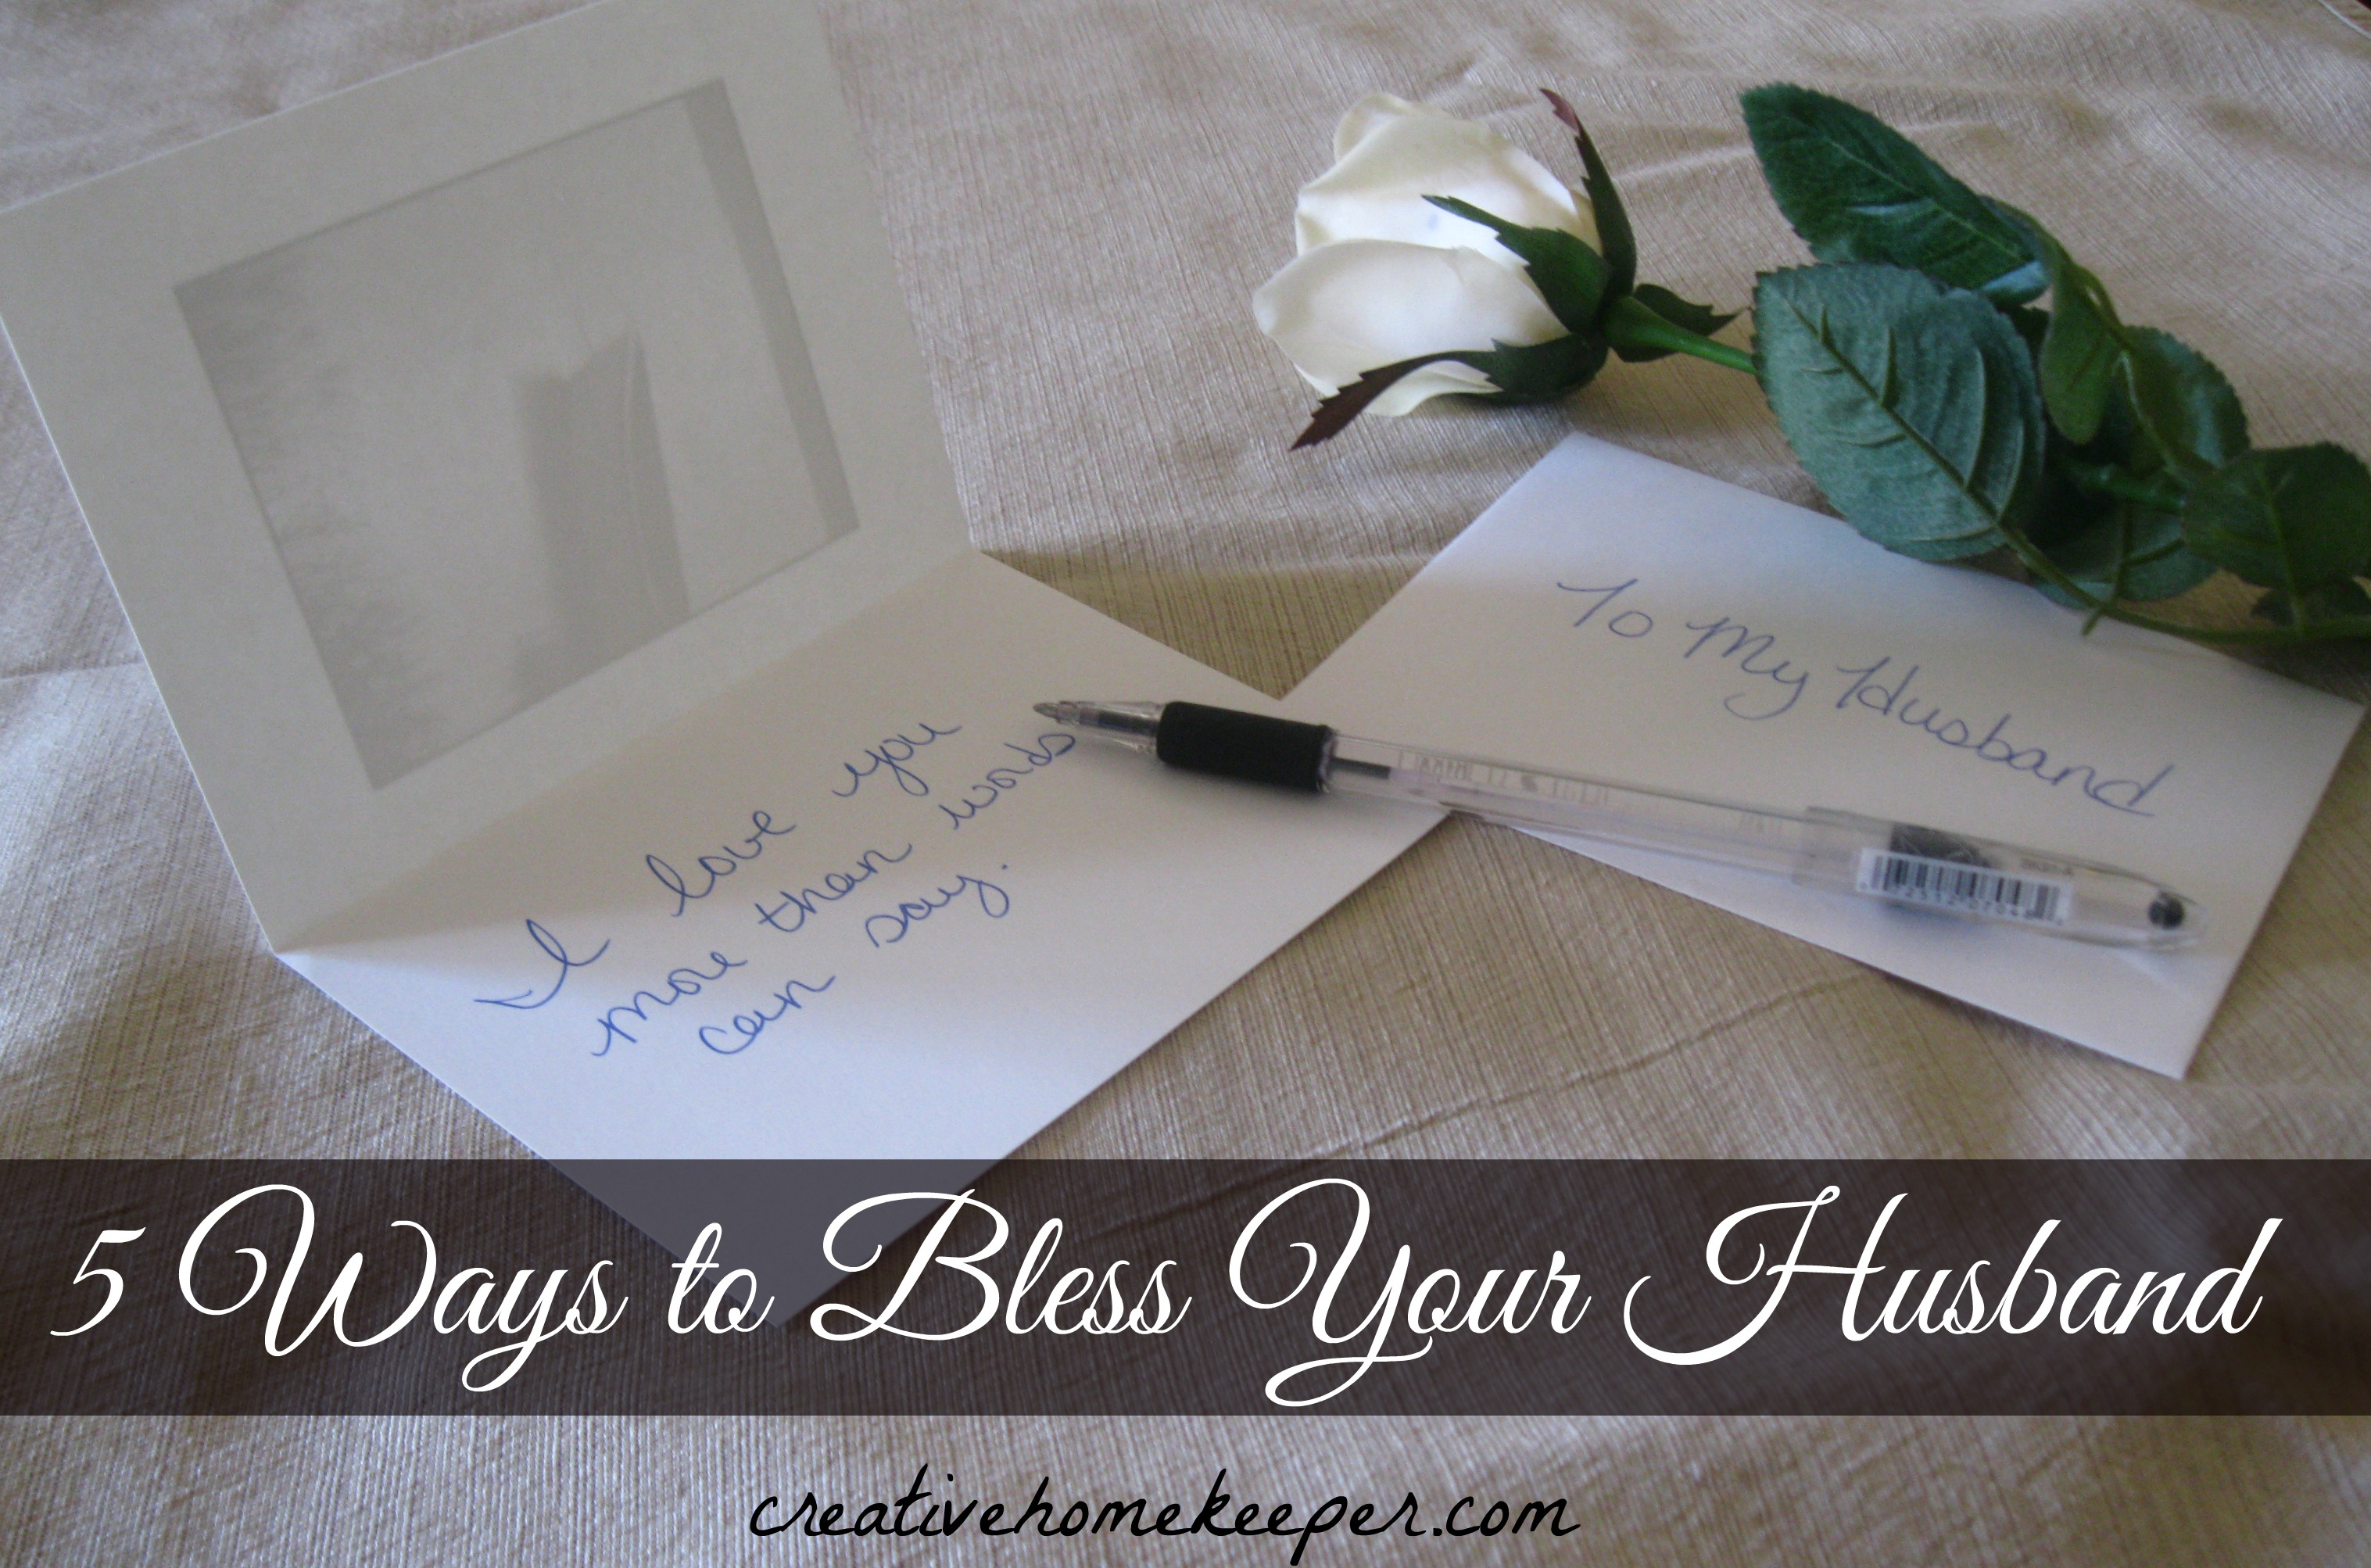 5 Ways to Bless Your Husband